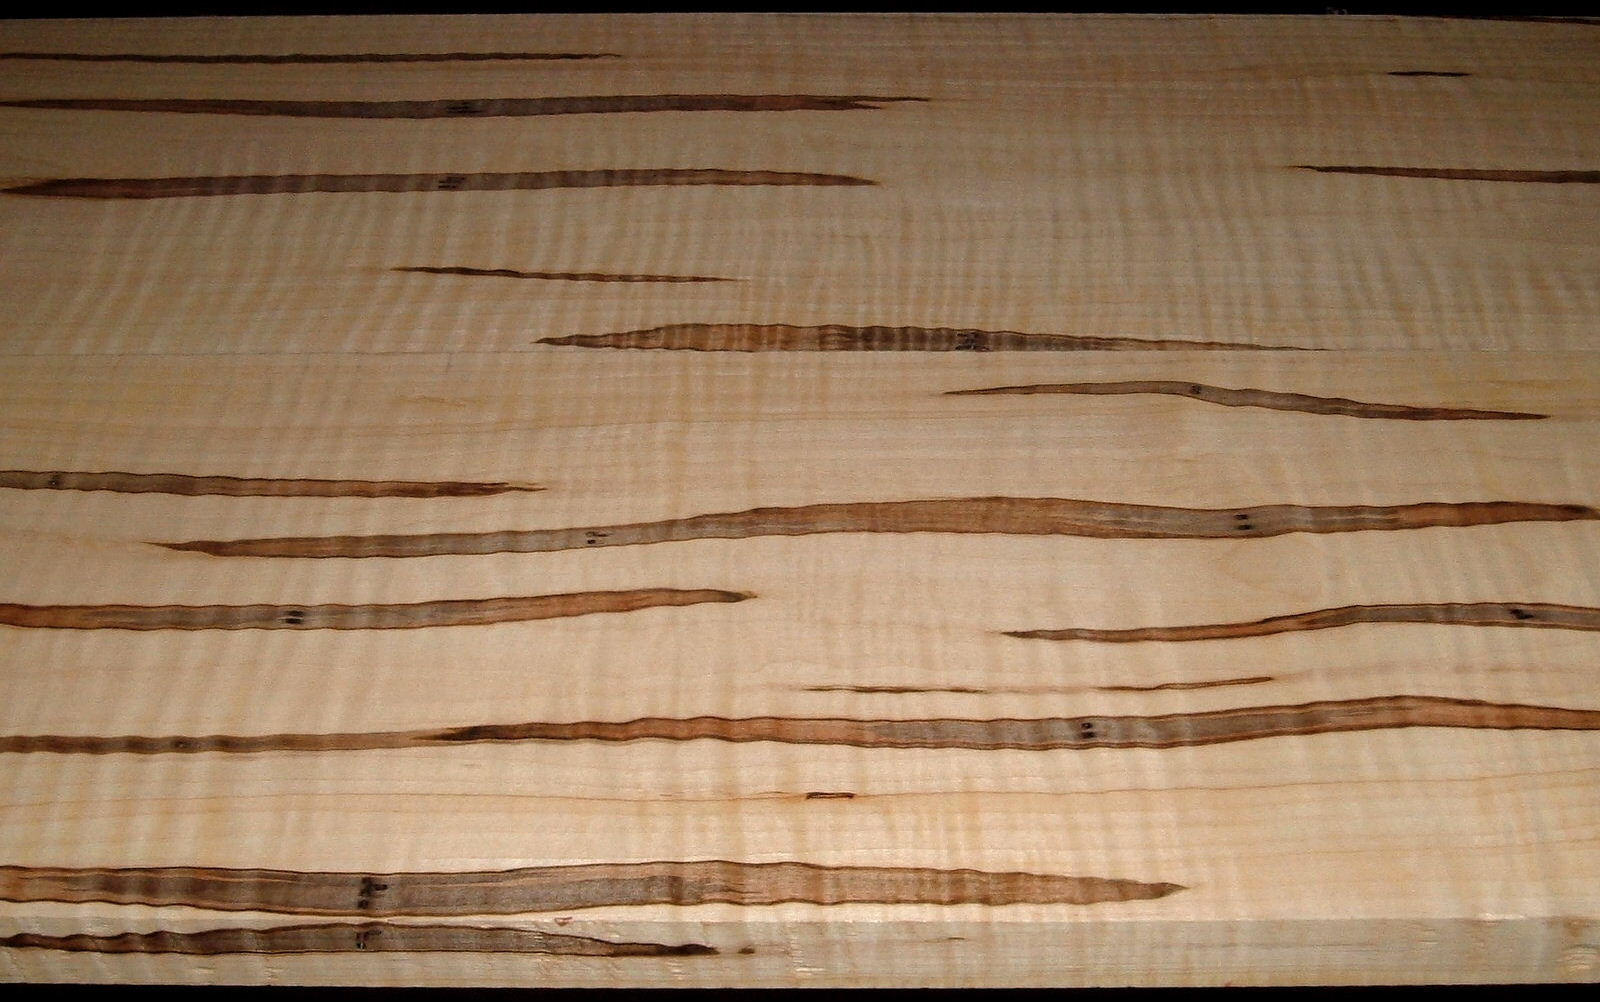 AM2005-79L, 1-1/8x10-1/8x60+ ,1-3/16x10-1/8x60+, Curly Tiger Ambrosia Wormy Maple, Cut from the same plank